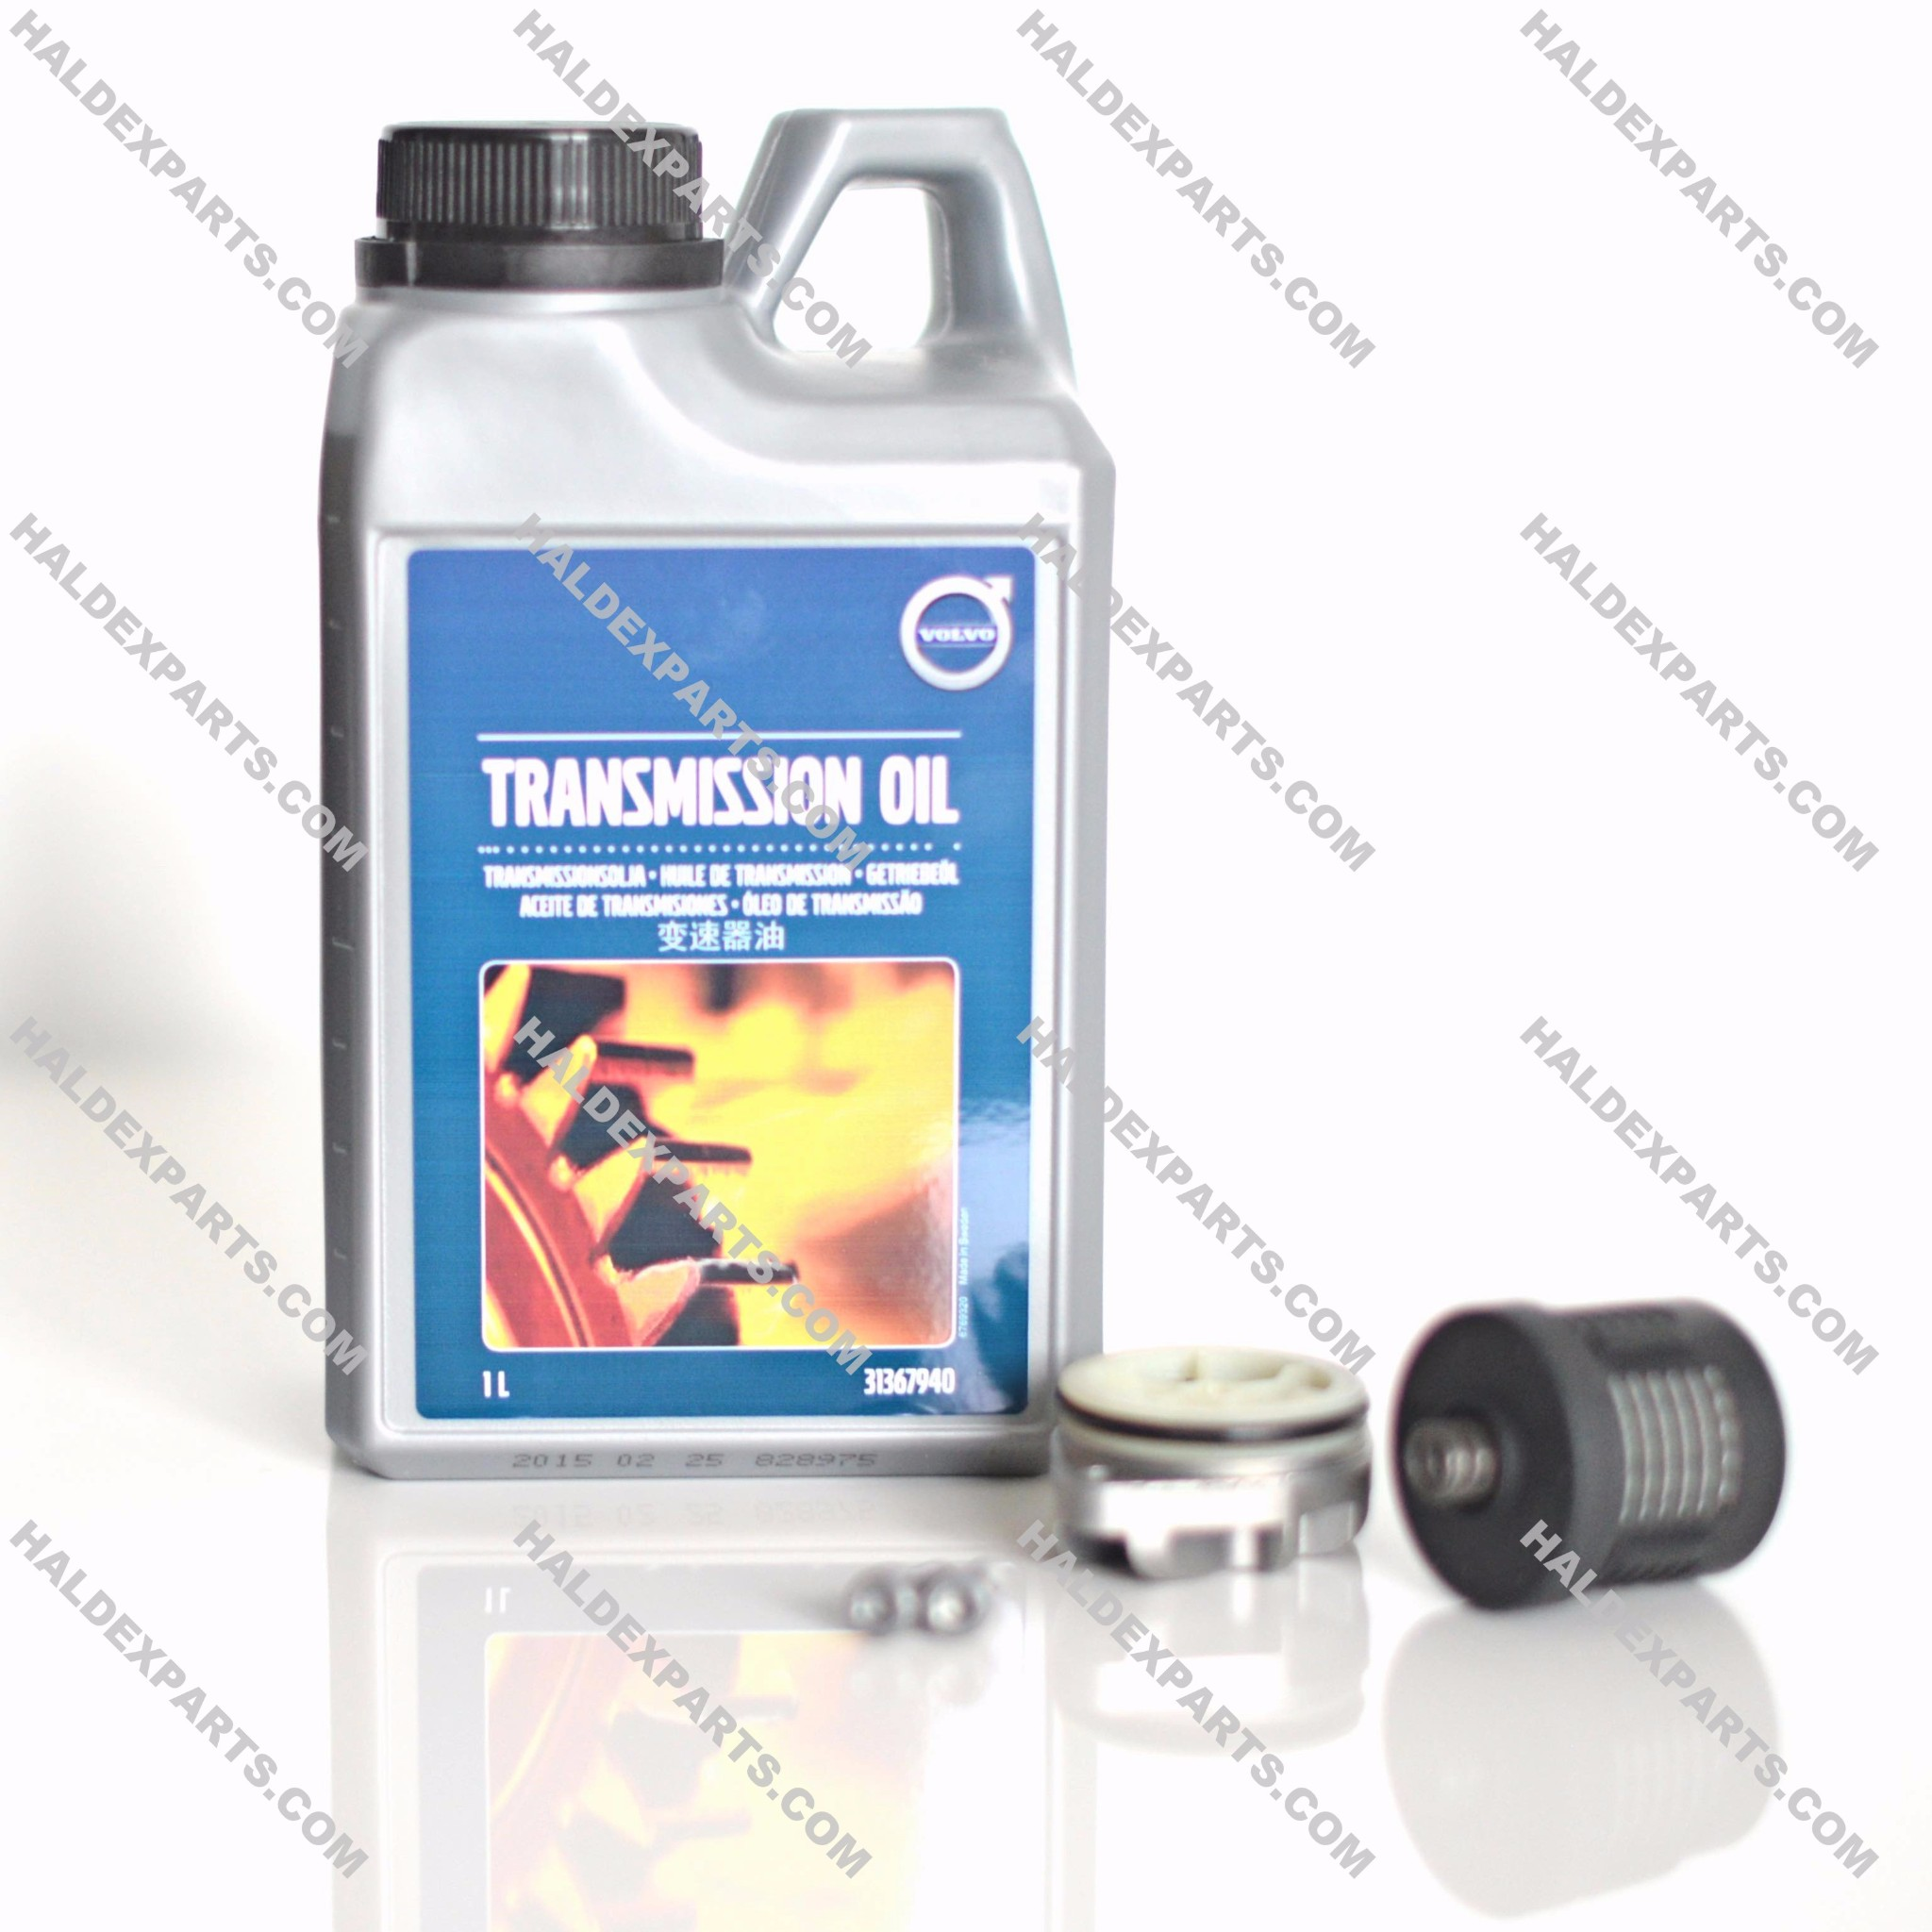 chevy 4x4 oil filter with P2624653 14489765 on Transfer Case Service as well Sprinter Losing Power How To Figure Out The Problem together with 1989 Chevrolet Silverado 1500 Regular Cab likewise P2624653 14489765 likewise Viewtopic.